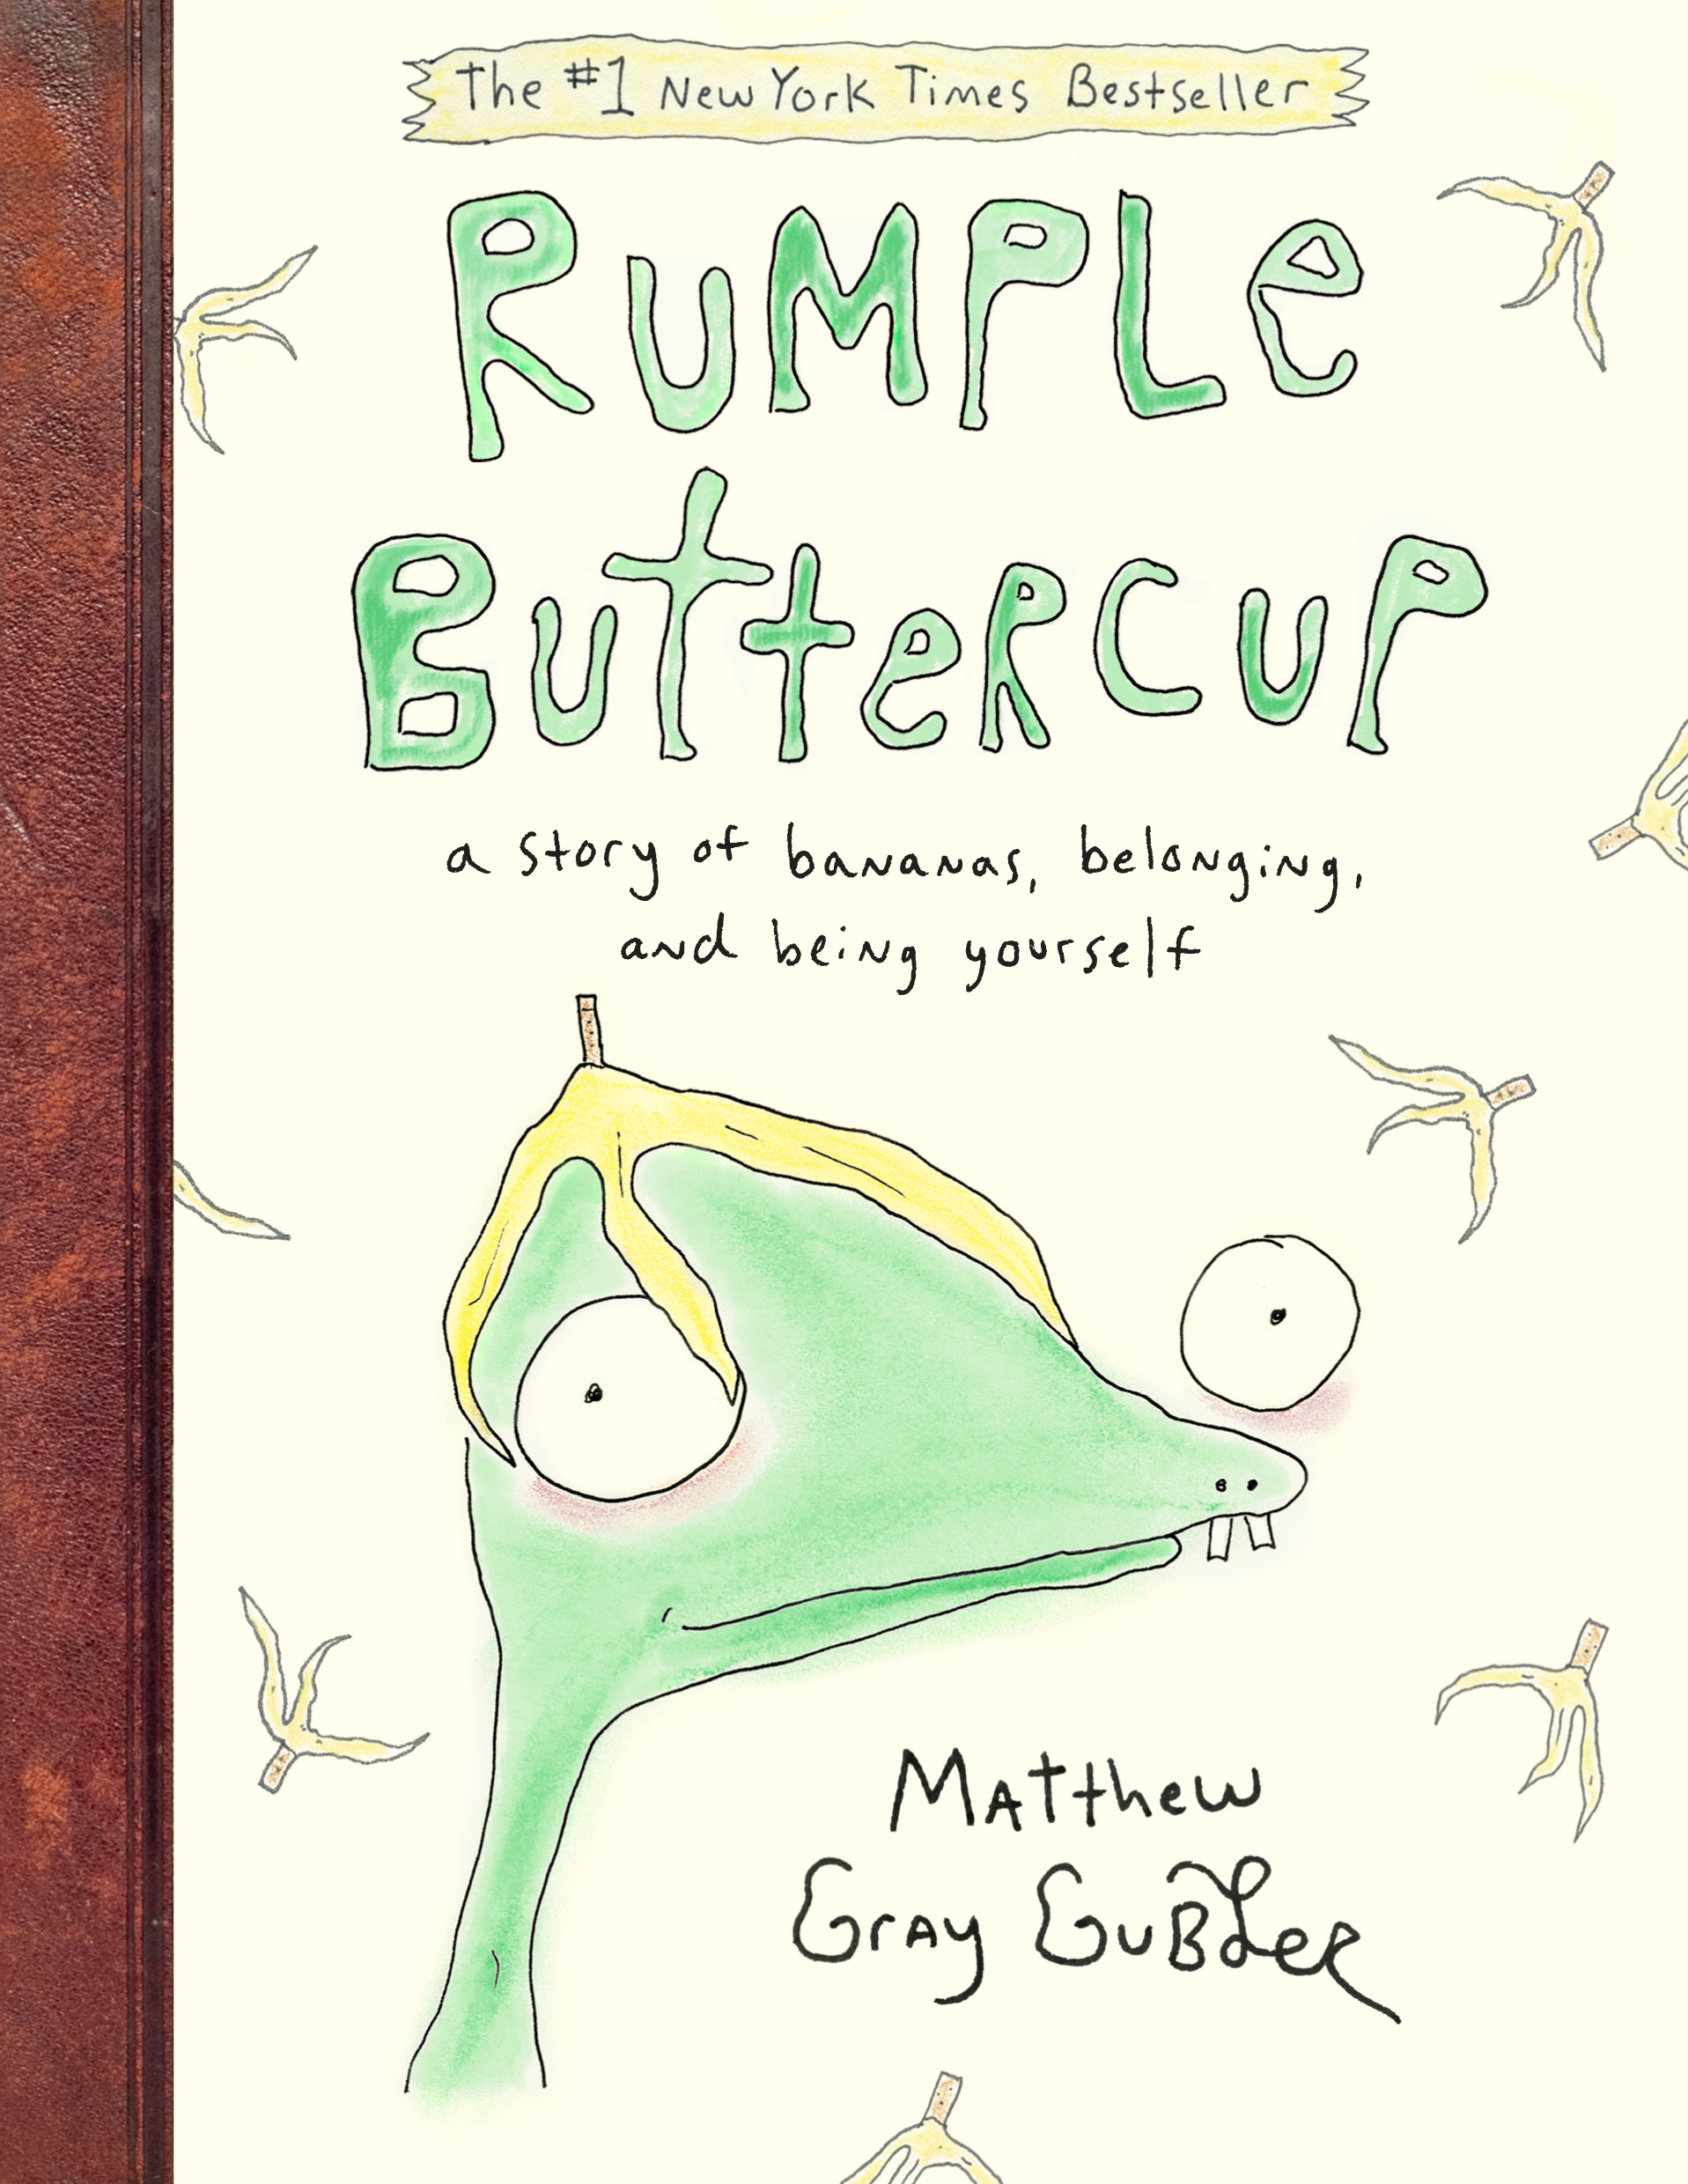 Rumple Buttercup: A Story of Bananas, Belonging, and Being Yourself | Picture books